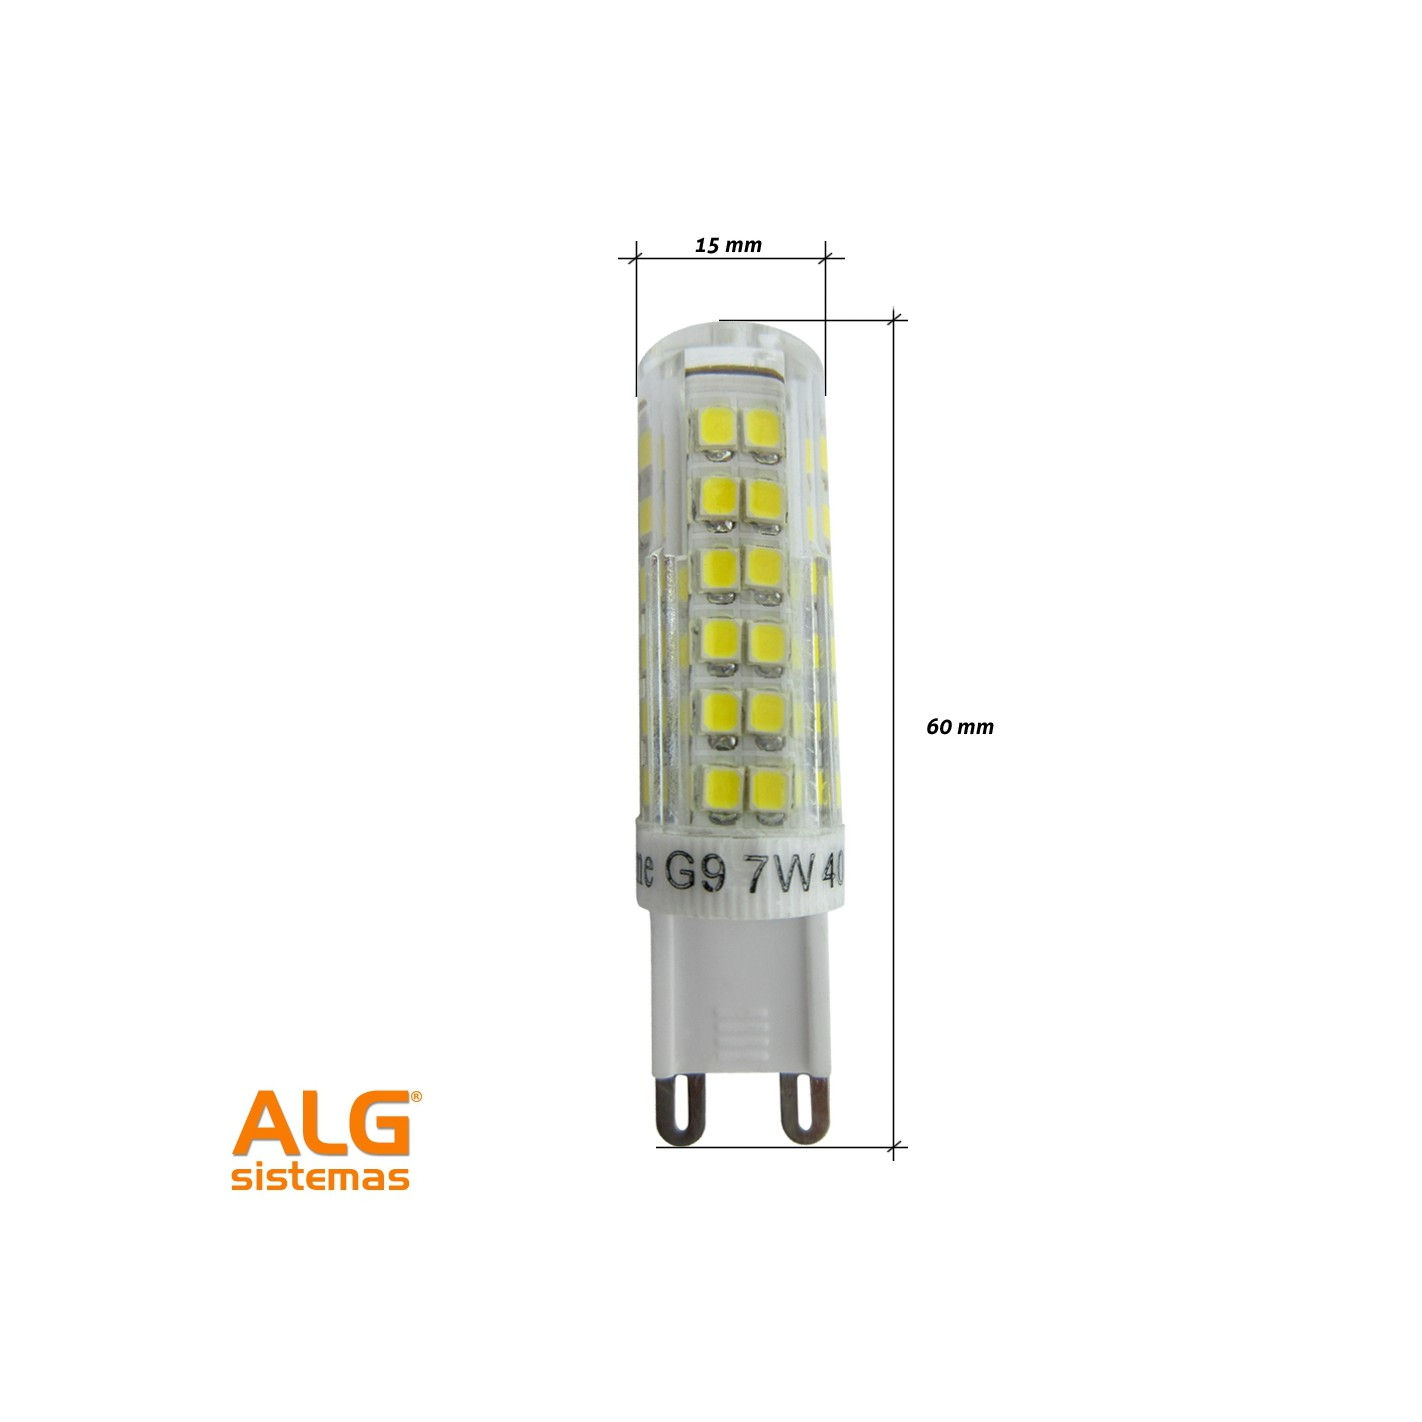 Bombilla g9 led fabulous bombilla g led w v k with - Bombilla led g9 ...